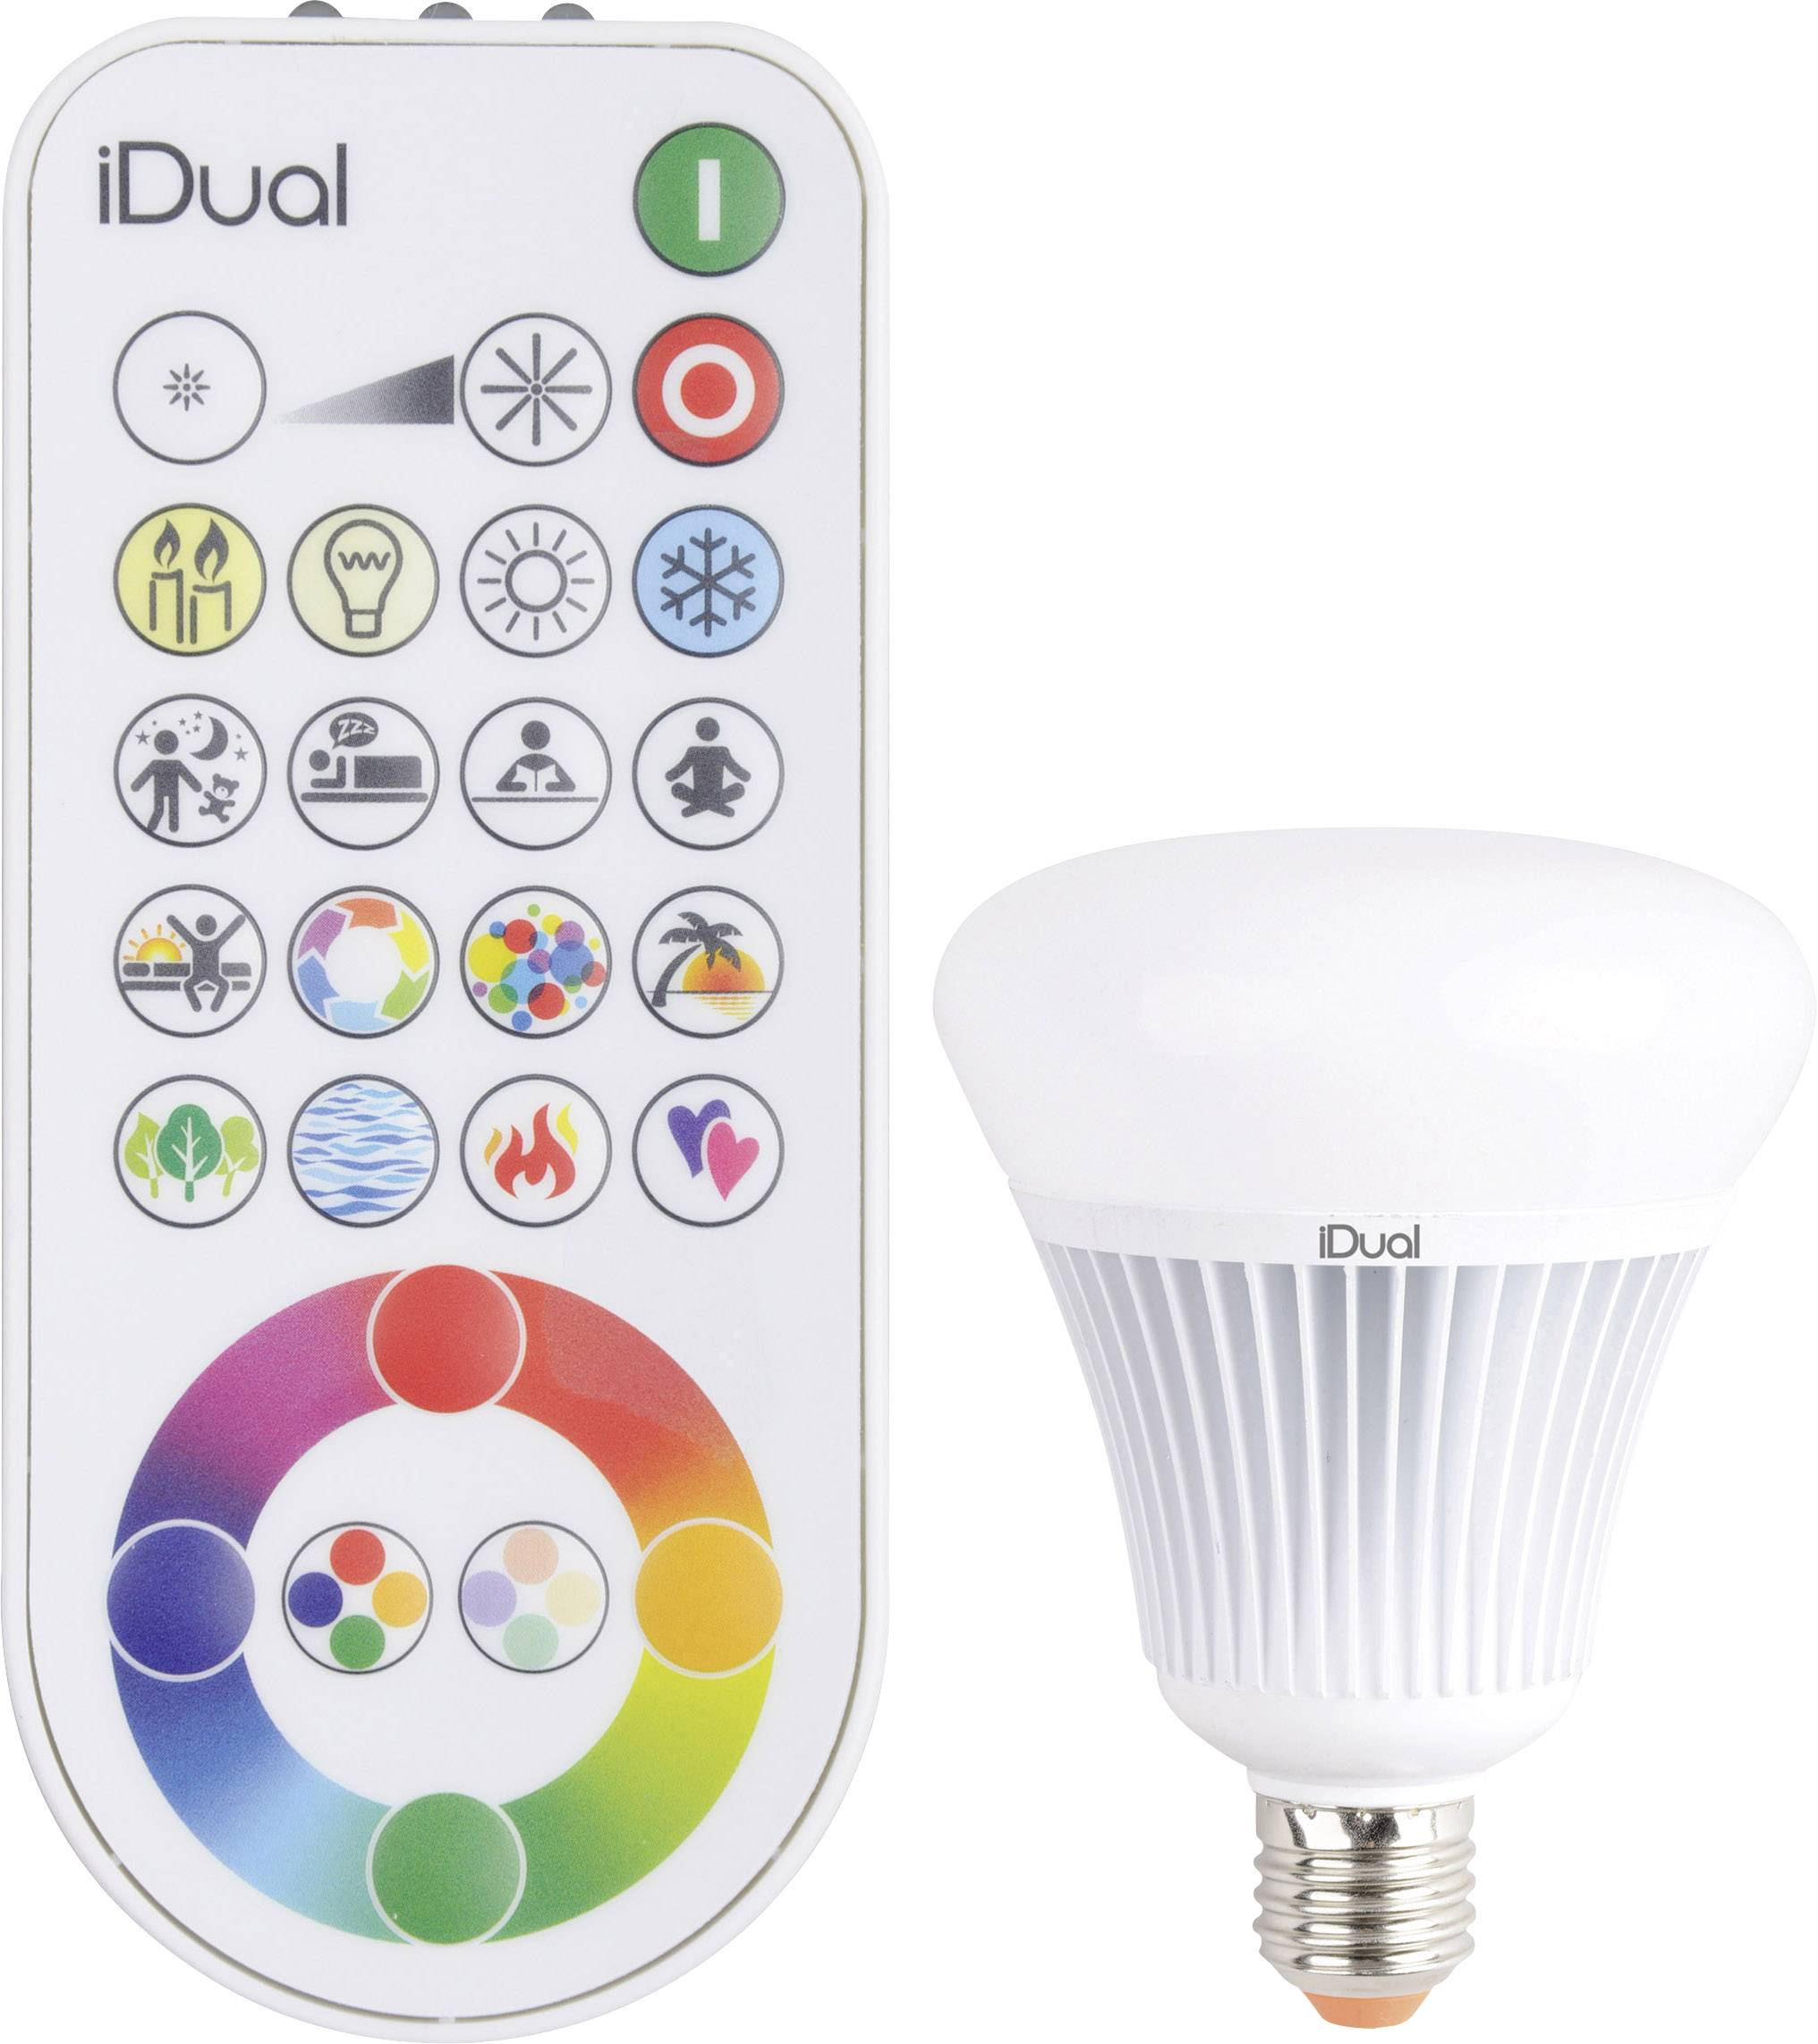 Idual Verlichting Jedi Lighting Led Energielabel A A E E27 Bol 16 W 75 W Rgbw Ø X L 100 Mm X 138 Mm Dimbaar Colorchanging 1 Stu